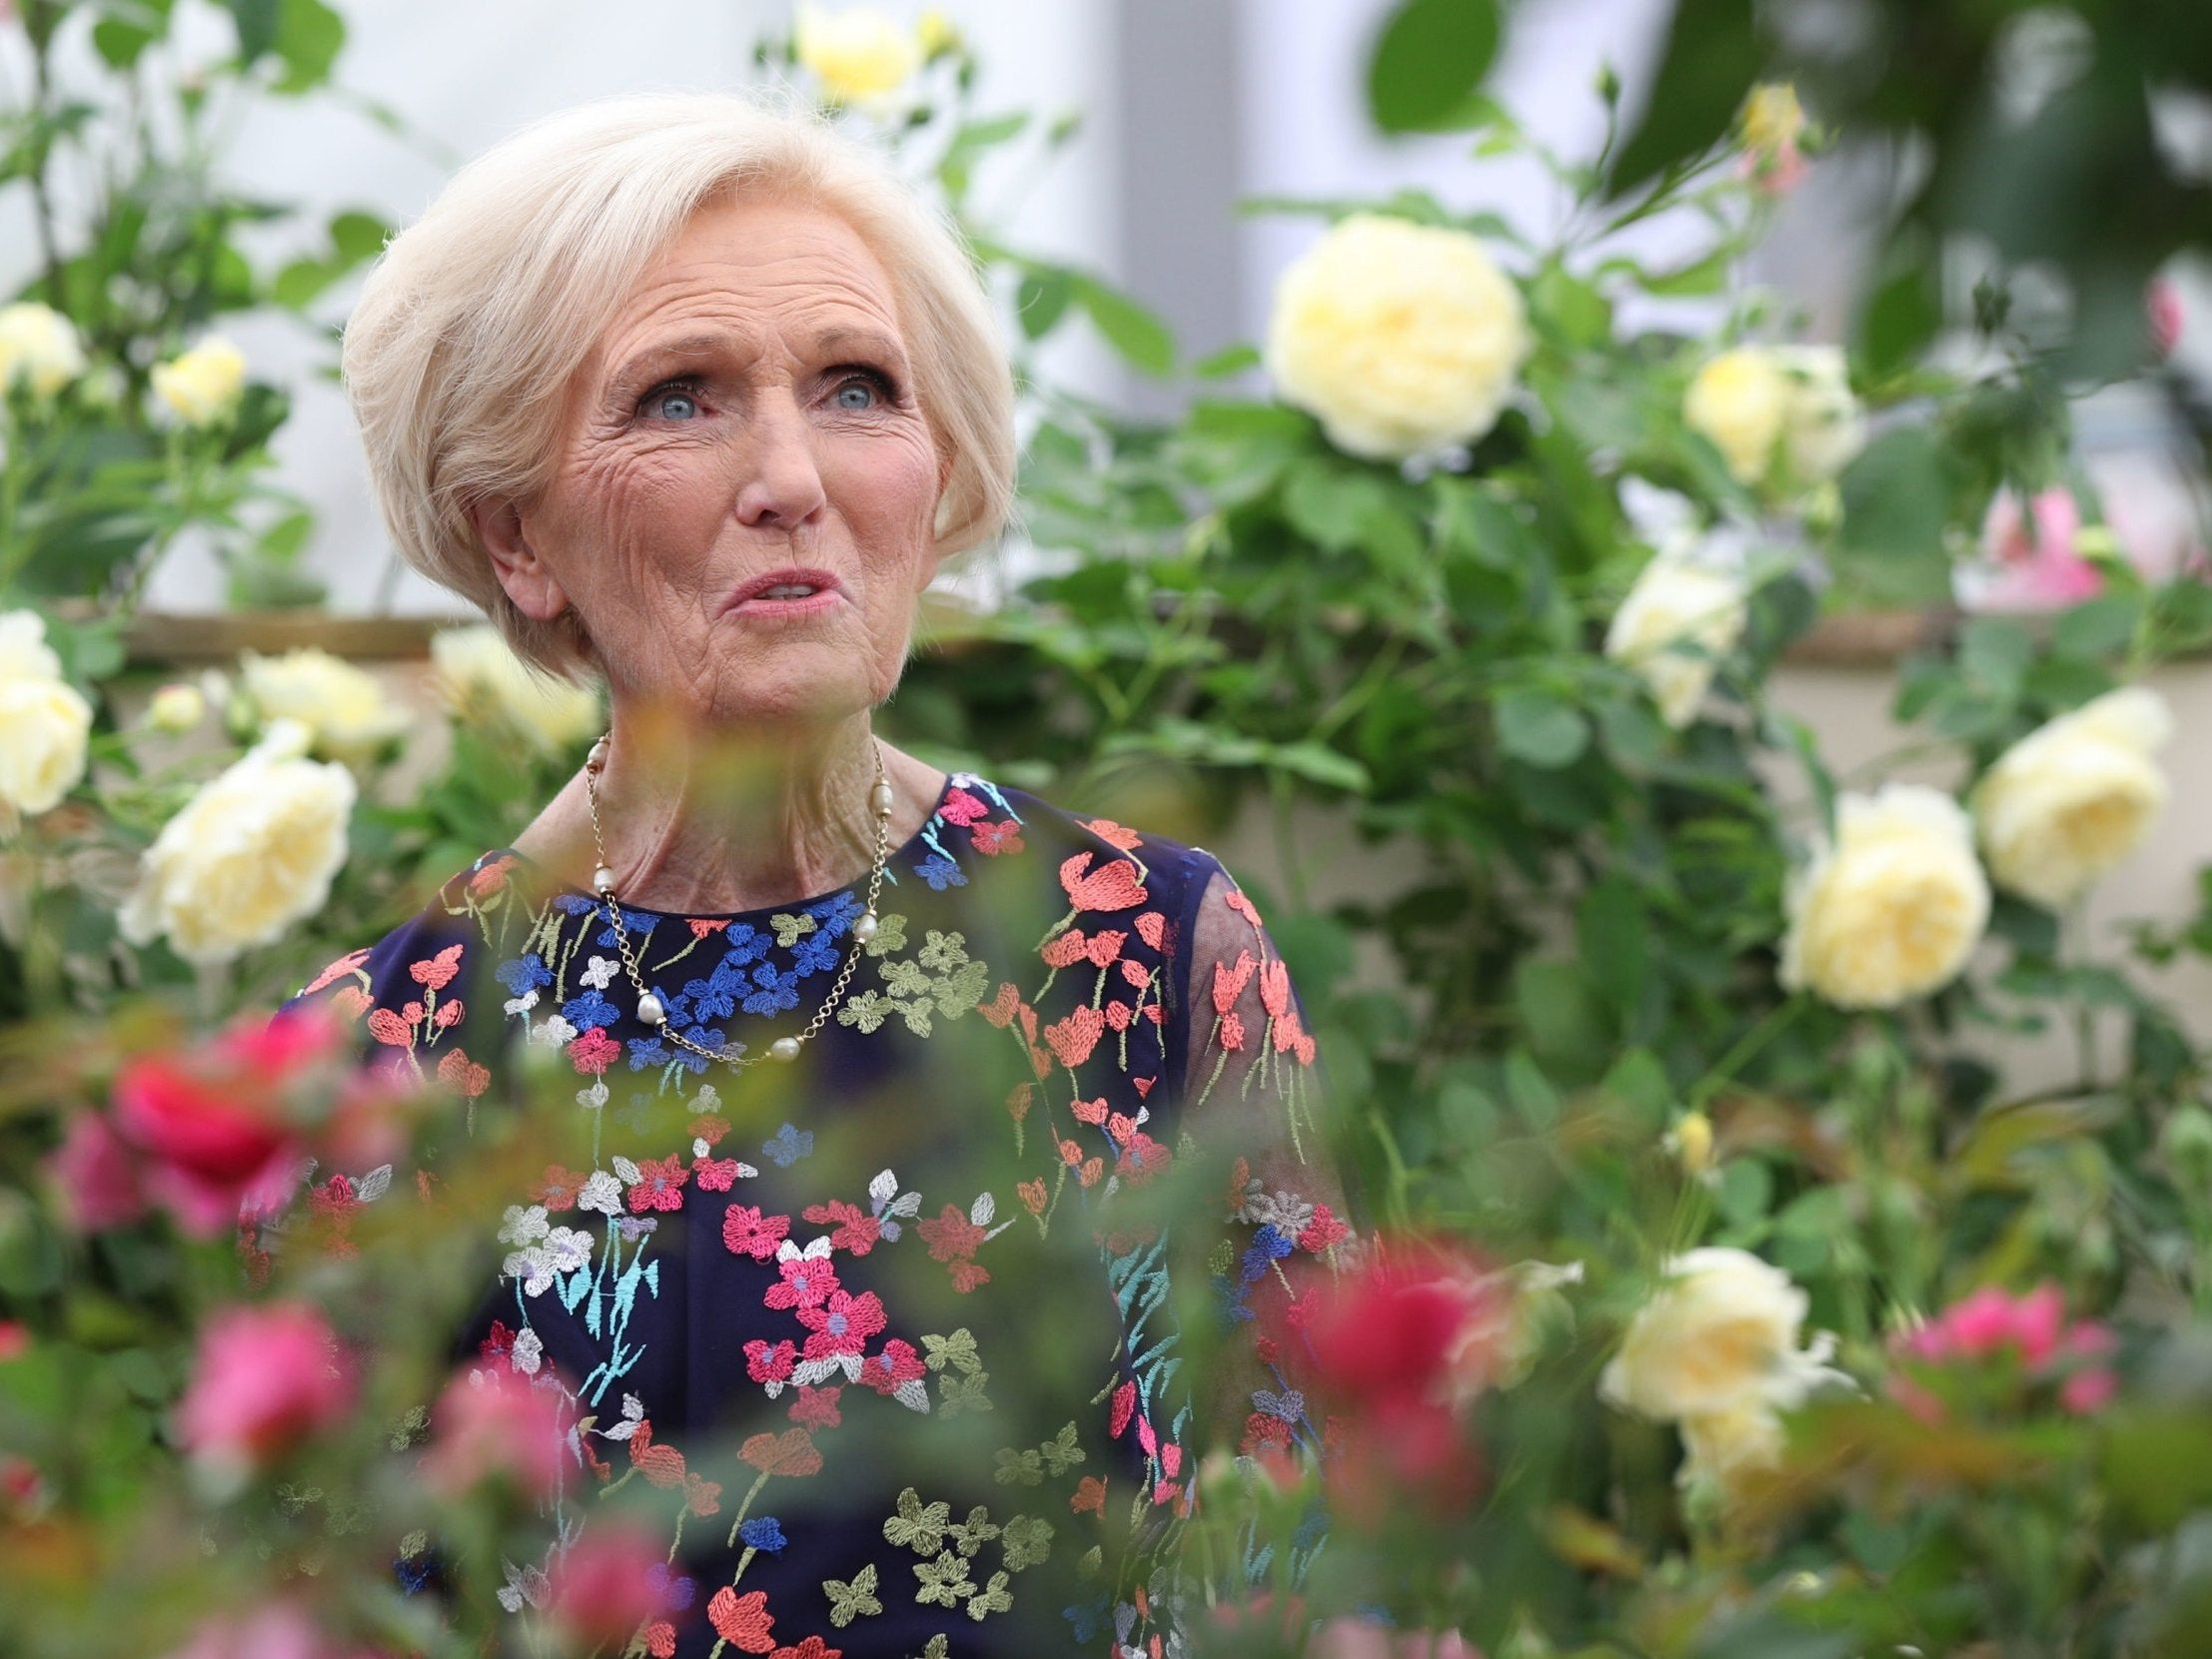 Chelsea Flower Show: Celebrity guests at annual garden event, from Mary Berry to Judi Dench